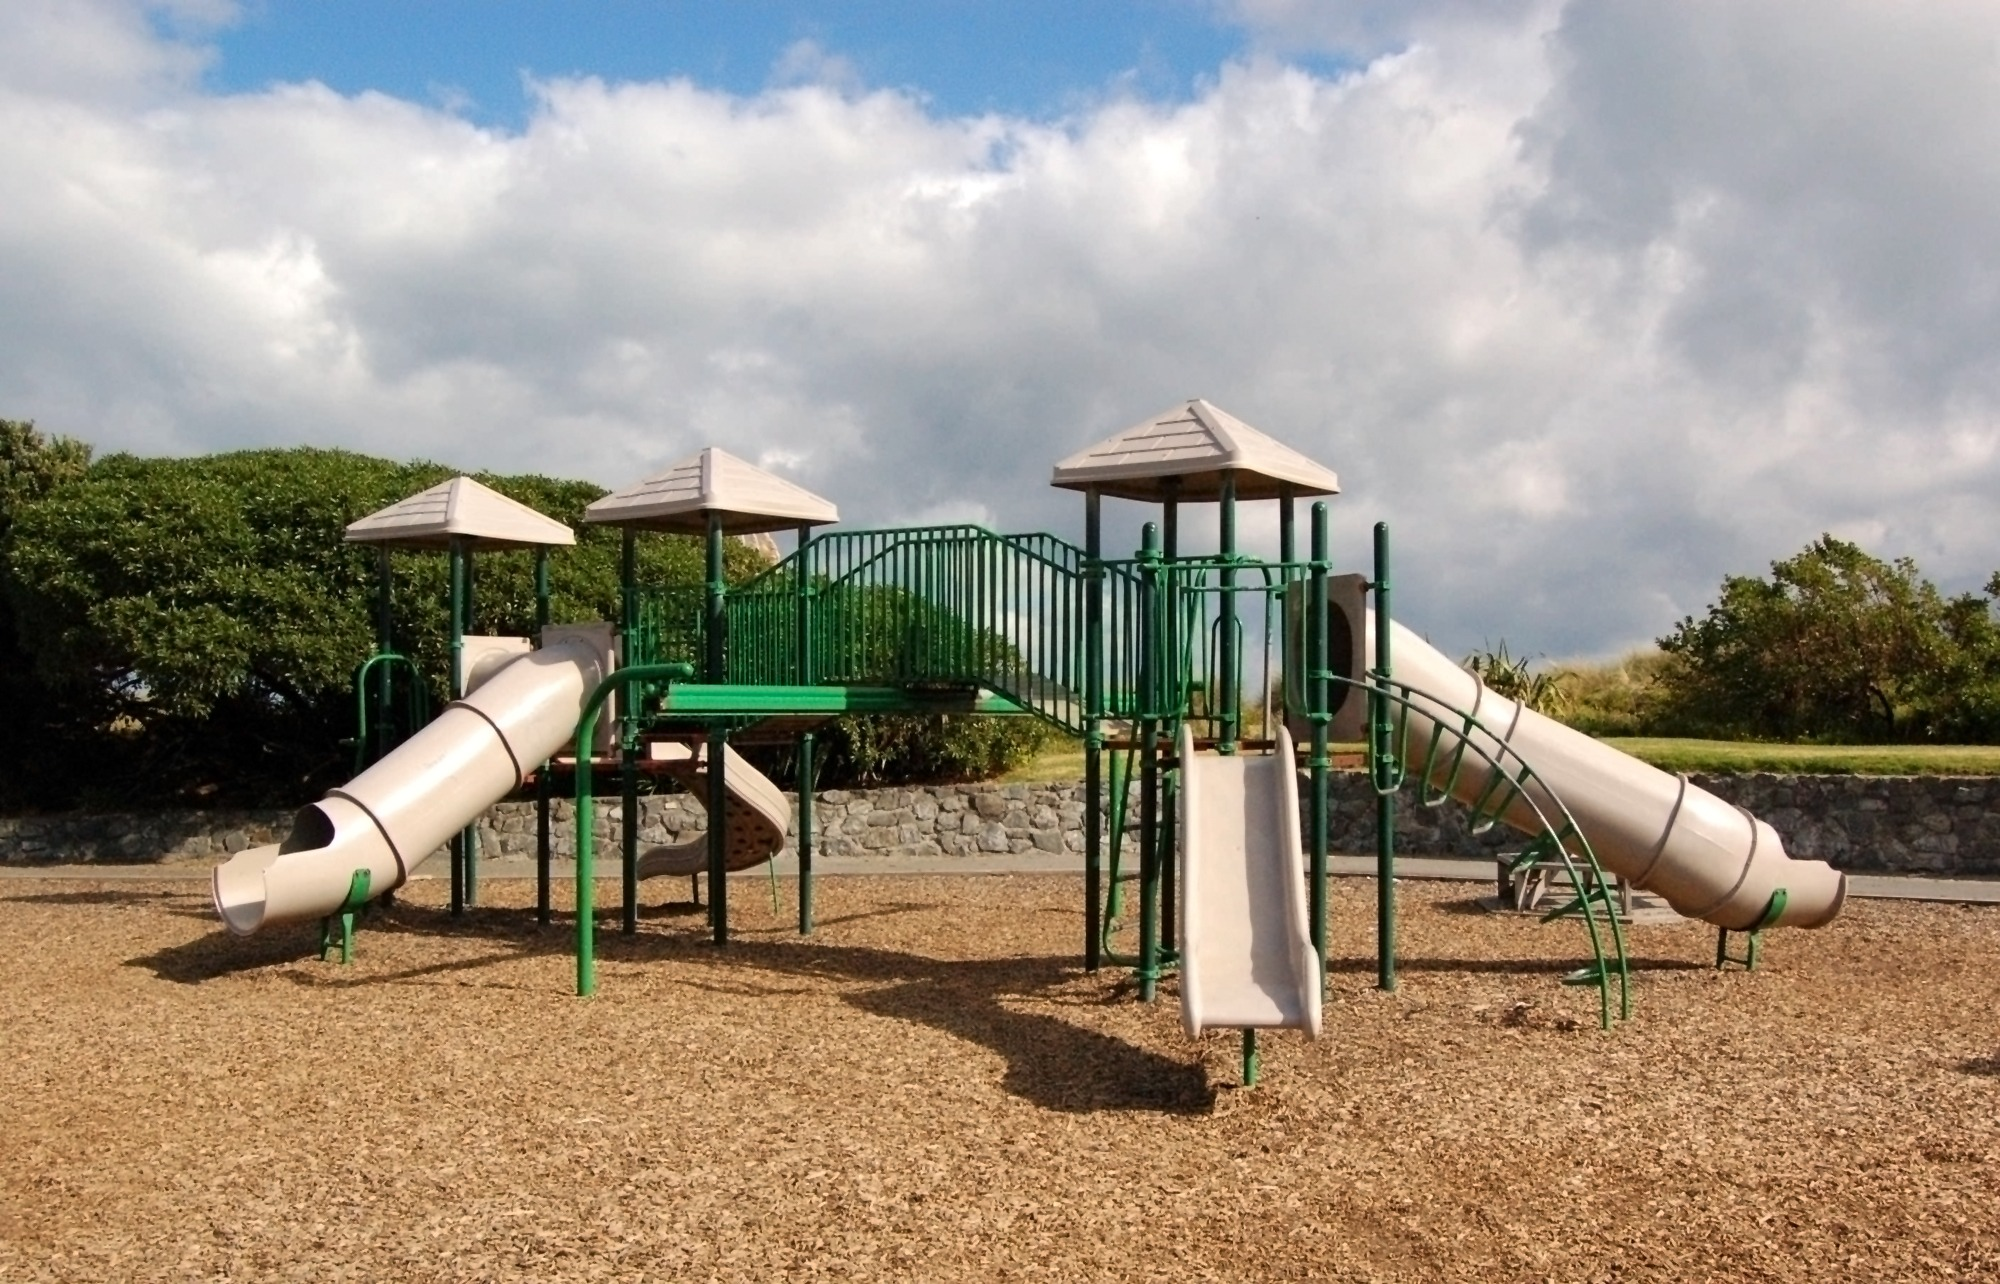 Backyard Playground Best Ground Cover Options Guide INSTALLIT - Backyard playground equipment